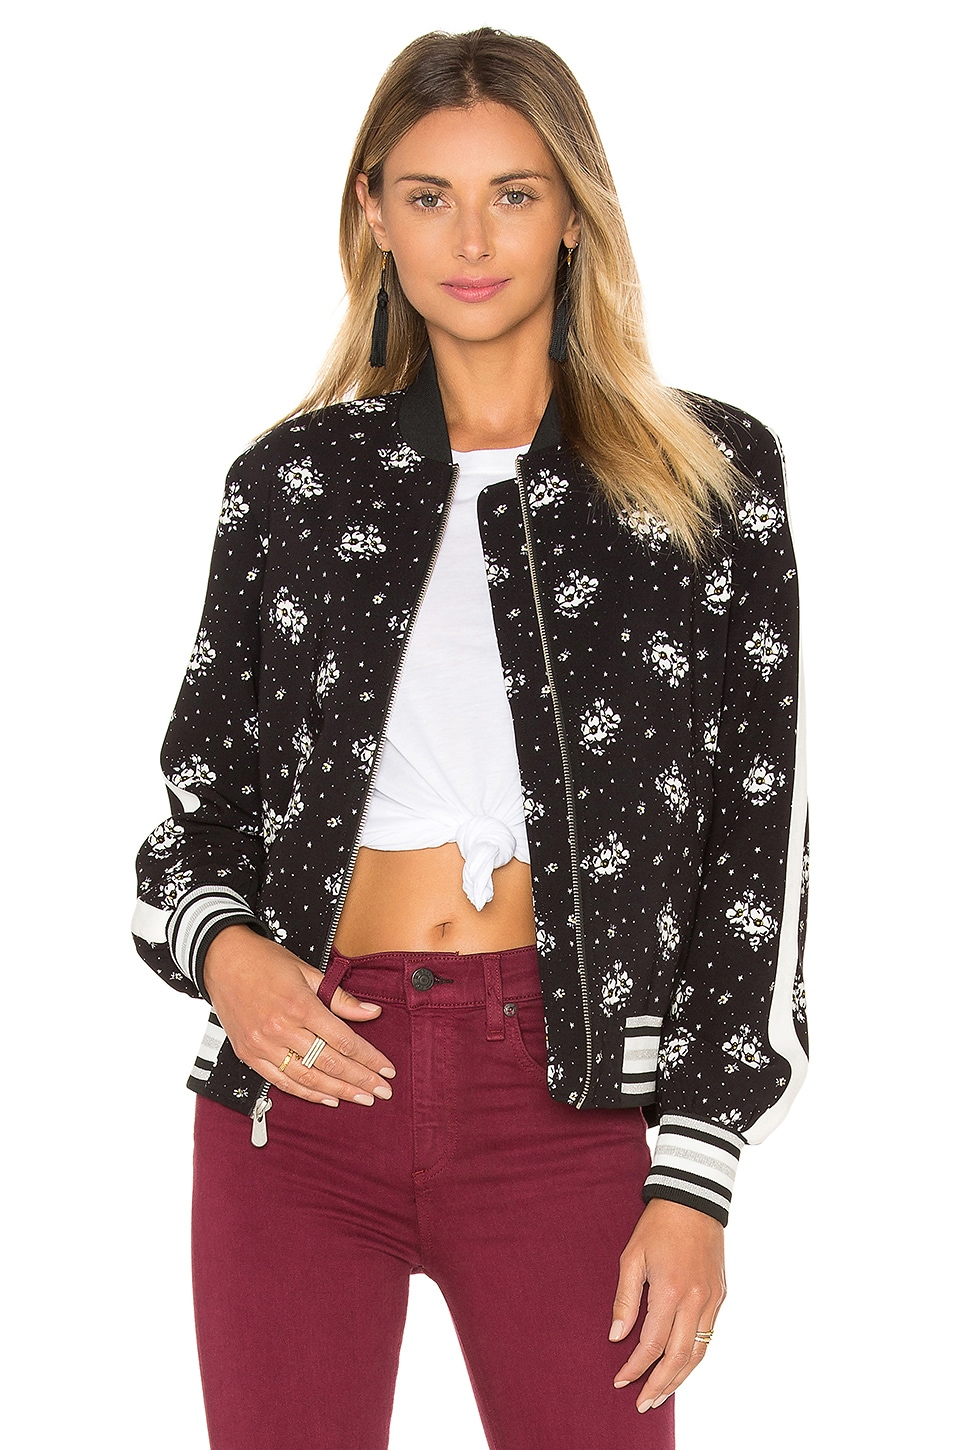 Stardust Floral Bomber Jacket by Cinq a Sept